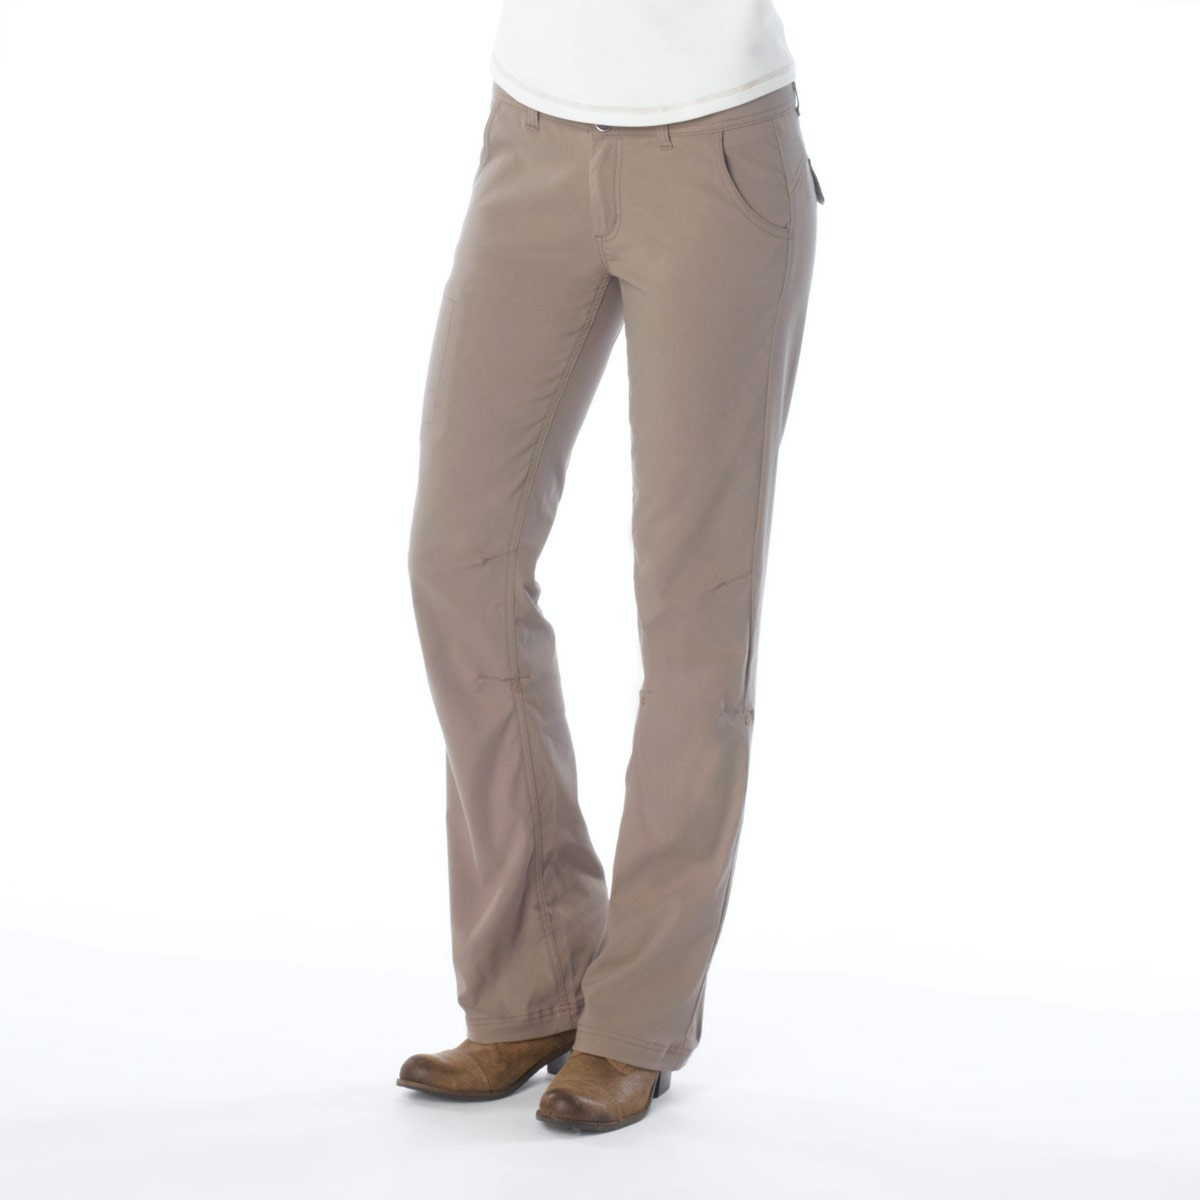 Beautiful Khaki Pants For Women Are Amongst The Latest Fashion Clothing Which Look  These Pants Can Be Paired With A White Collared Polo Shirt Or A Plain White Buttoned Shirt A White Or Black Blouse Can Also Look Classy With Your Khakis For